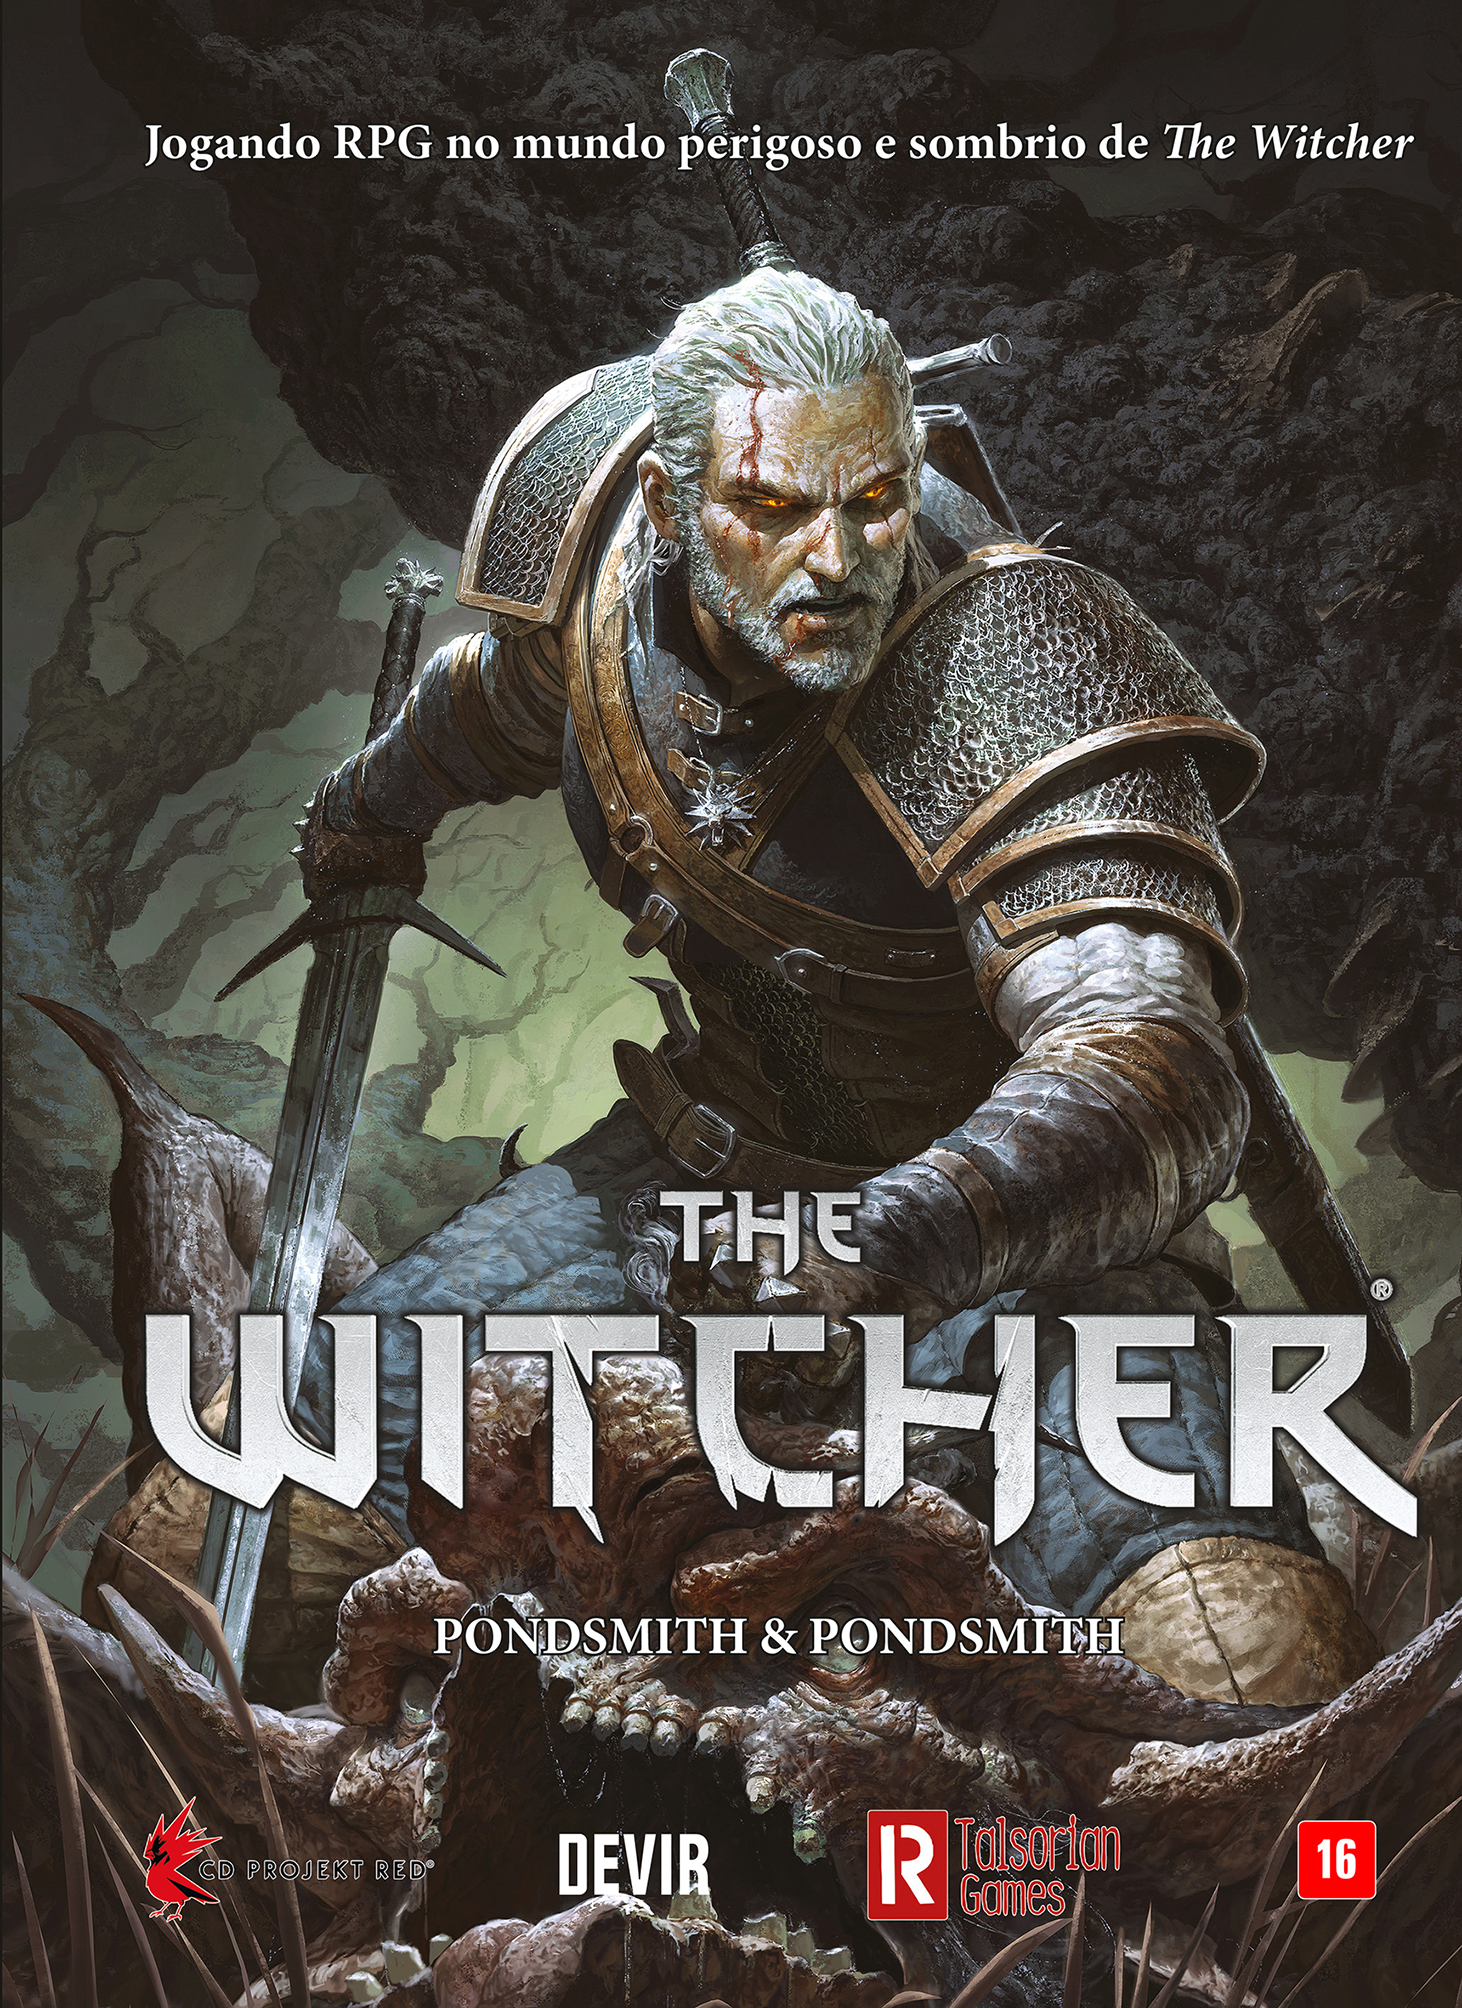 TheWitcher_RPG_capa